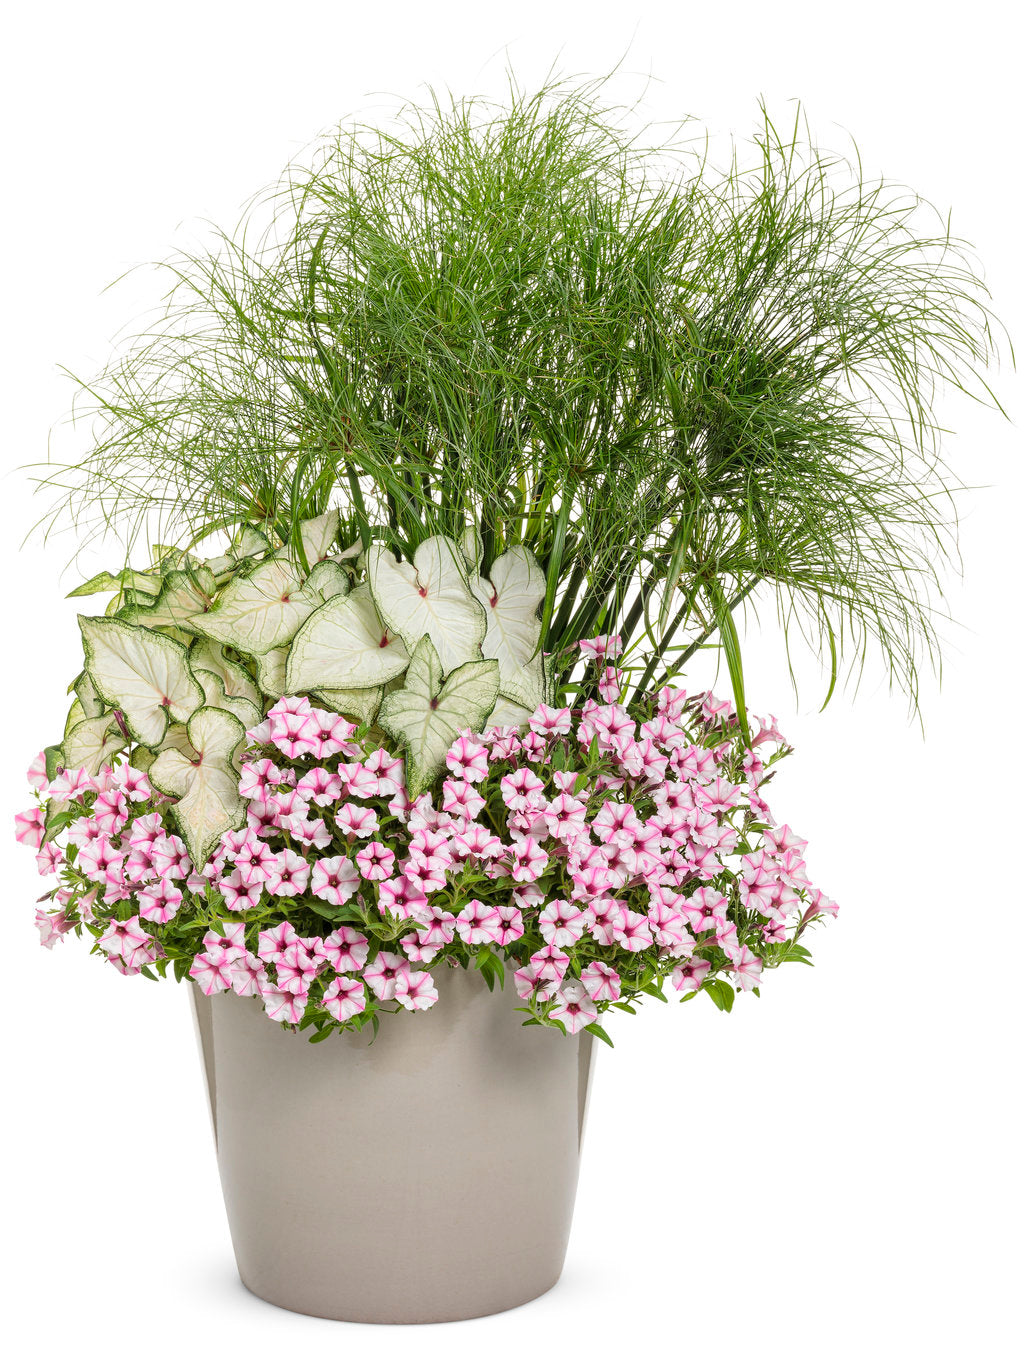 Supertunia Mini Vista® Pink Star | Proven Winners